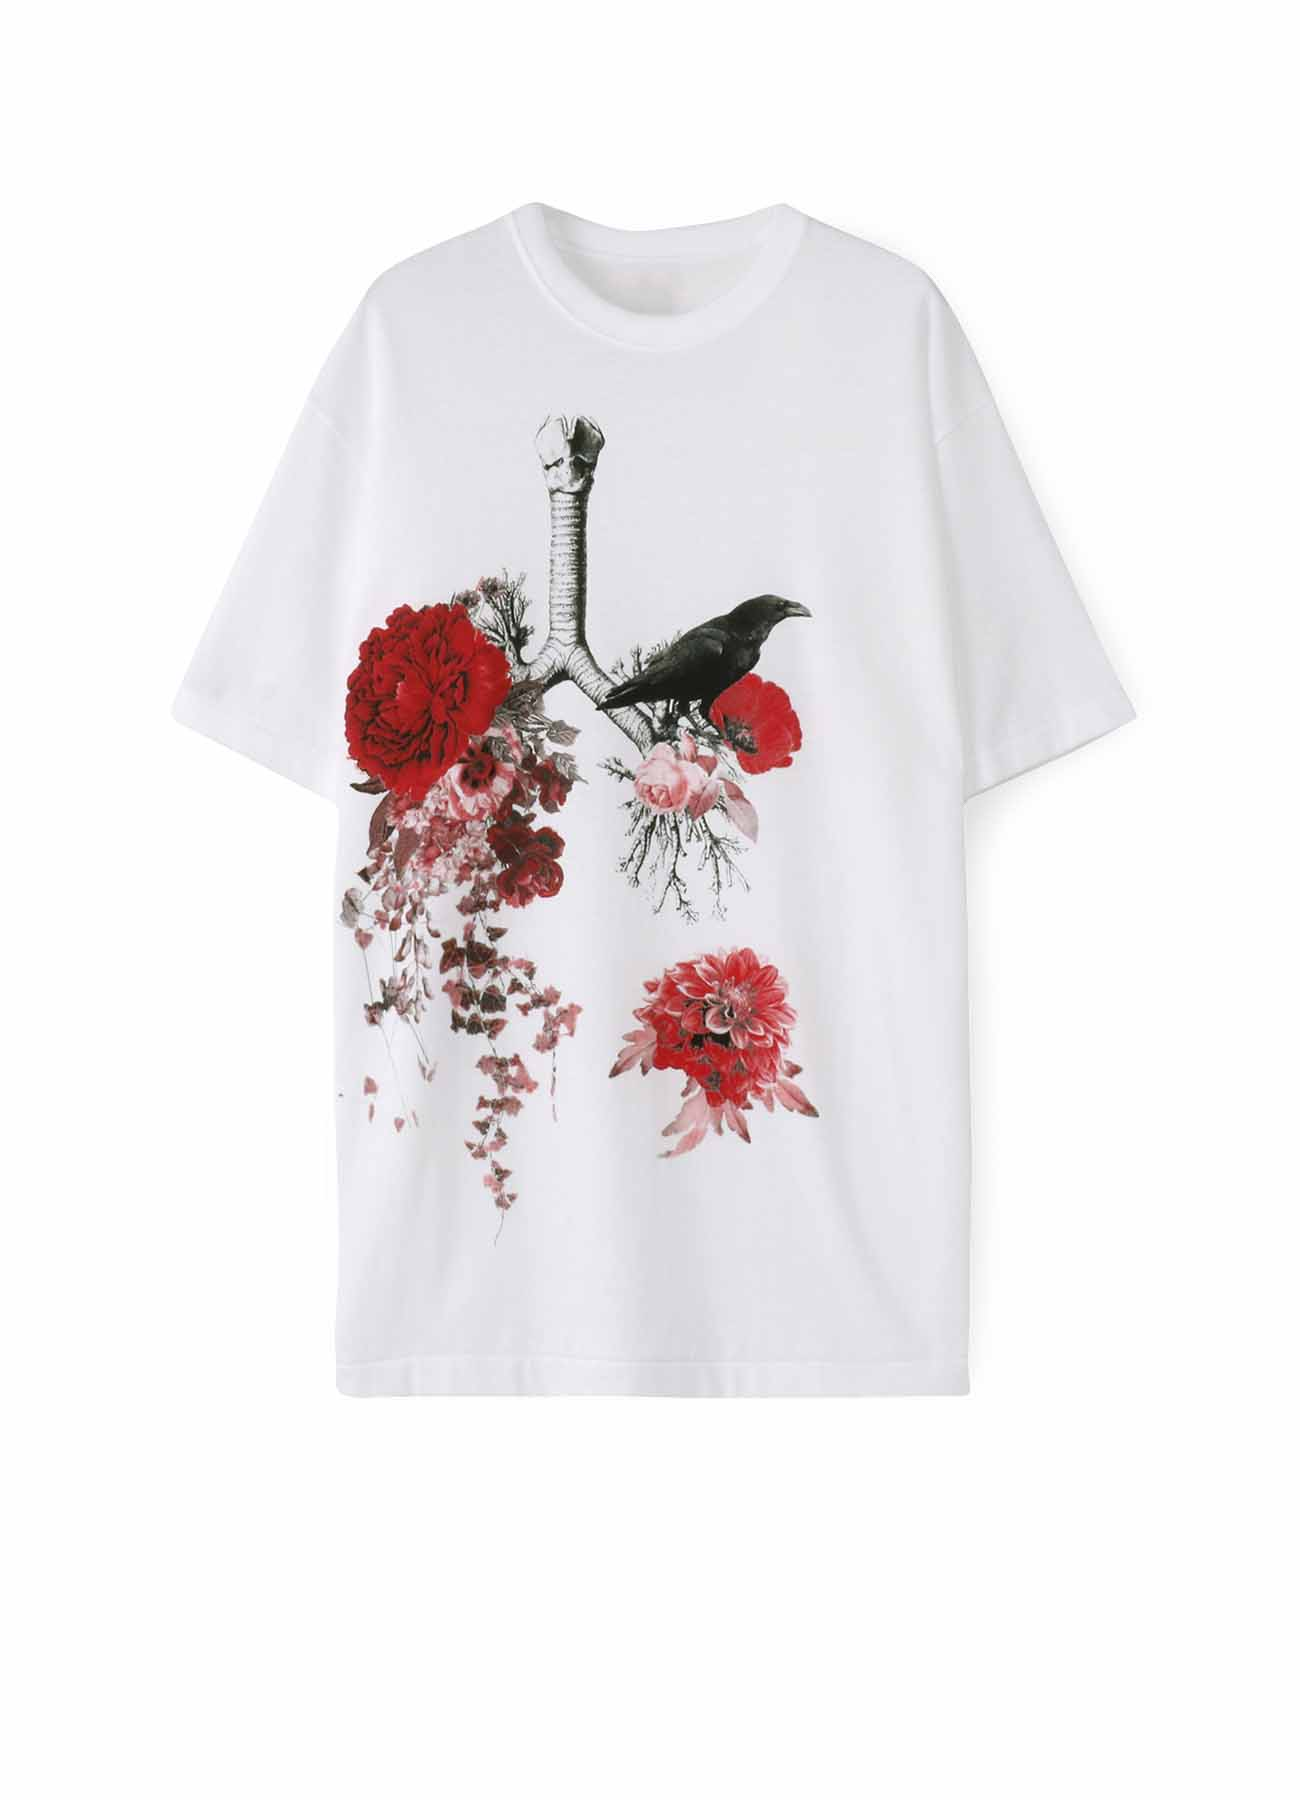 20/CottonJersey Crow on Lungs and Flowers